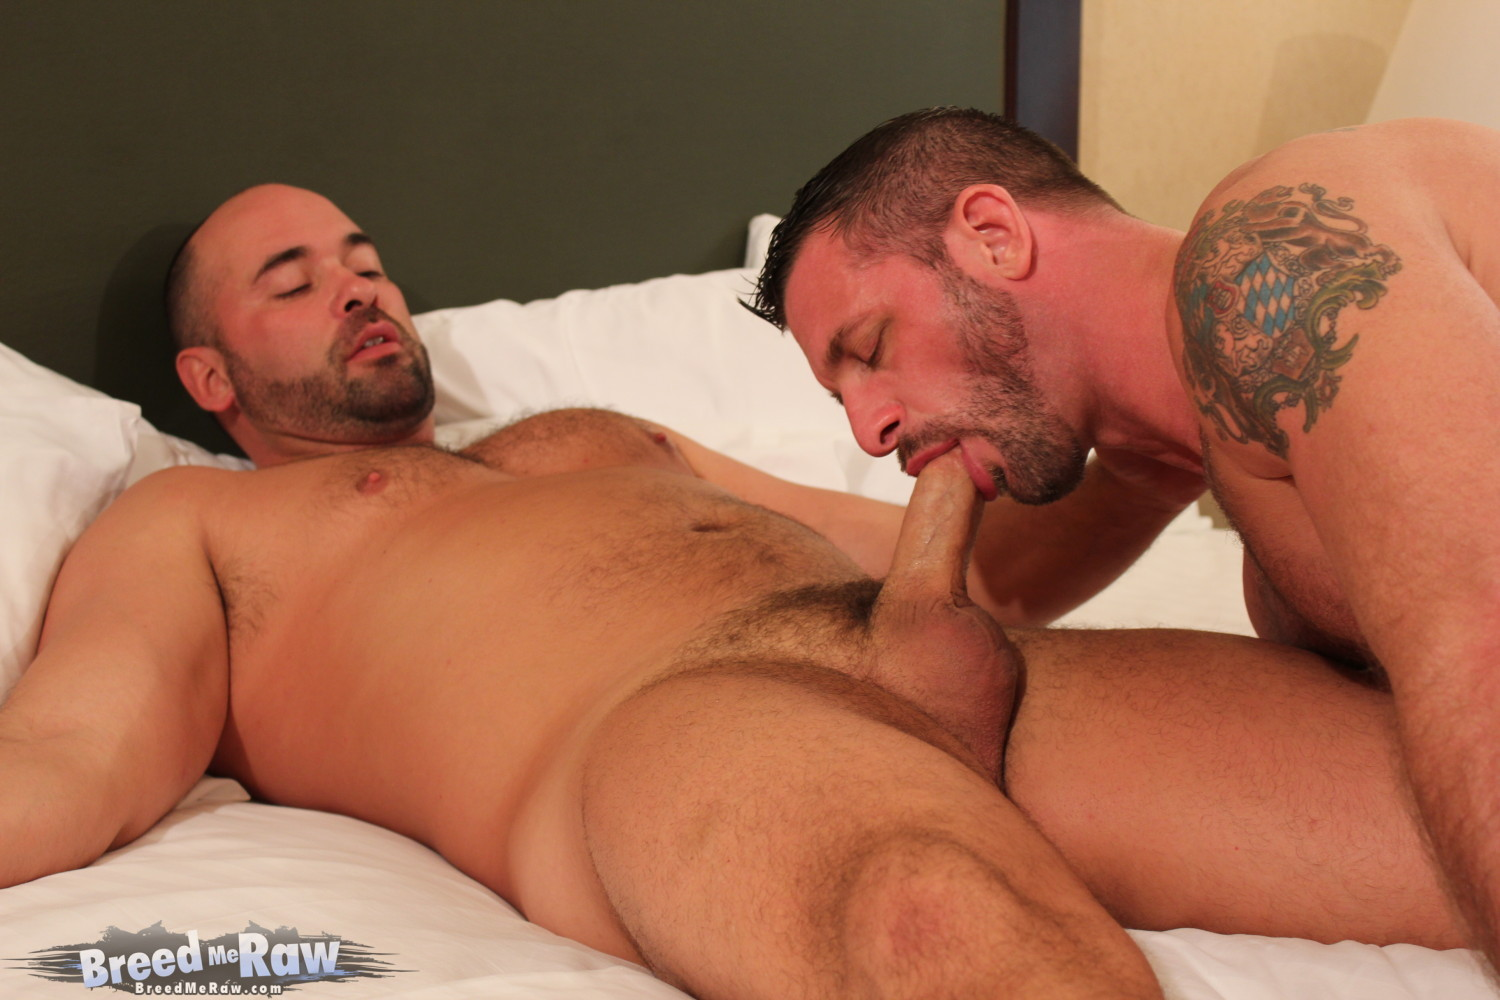 Breed Me Raw Tyler Reed and Morgan Black 02 Amateur Hung Muscle Studs Rimming and Barebacking